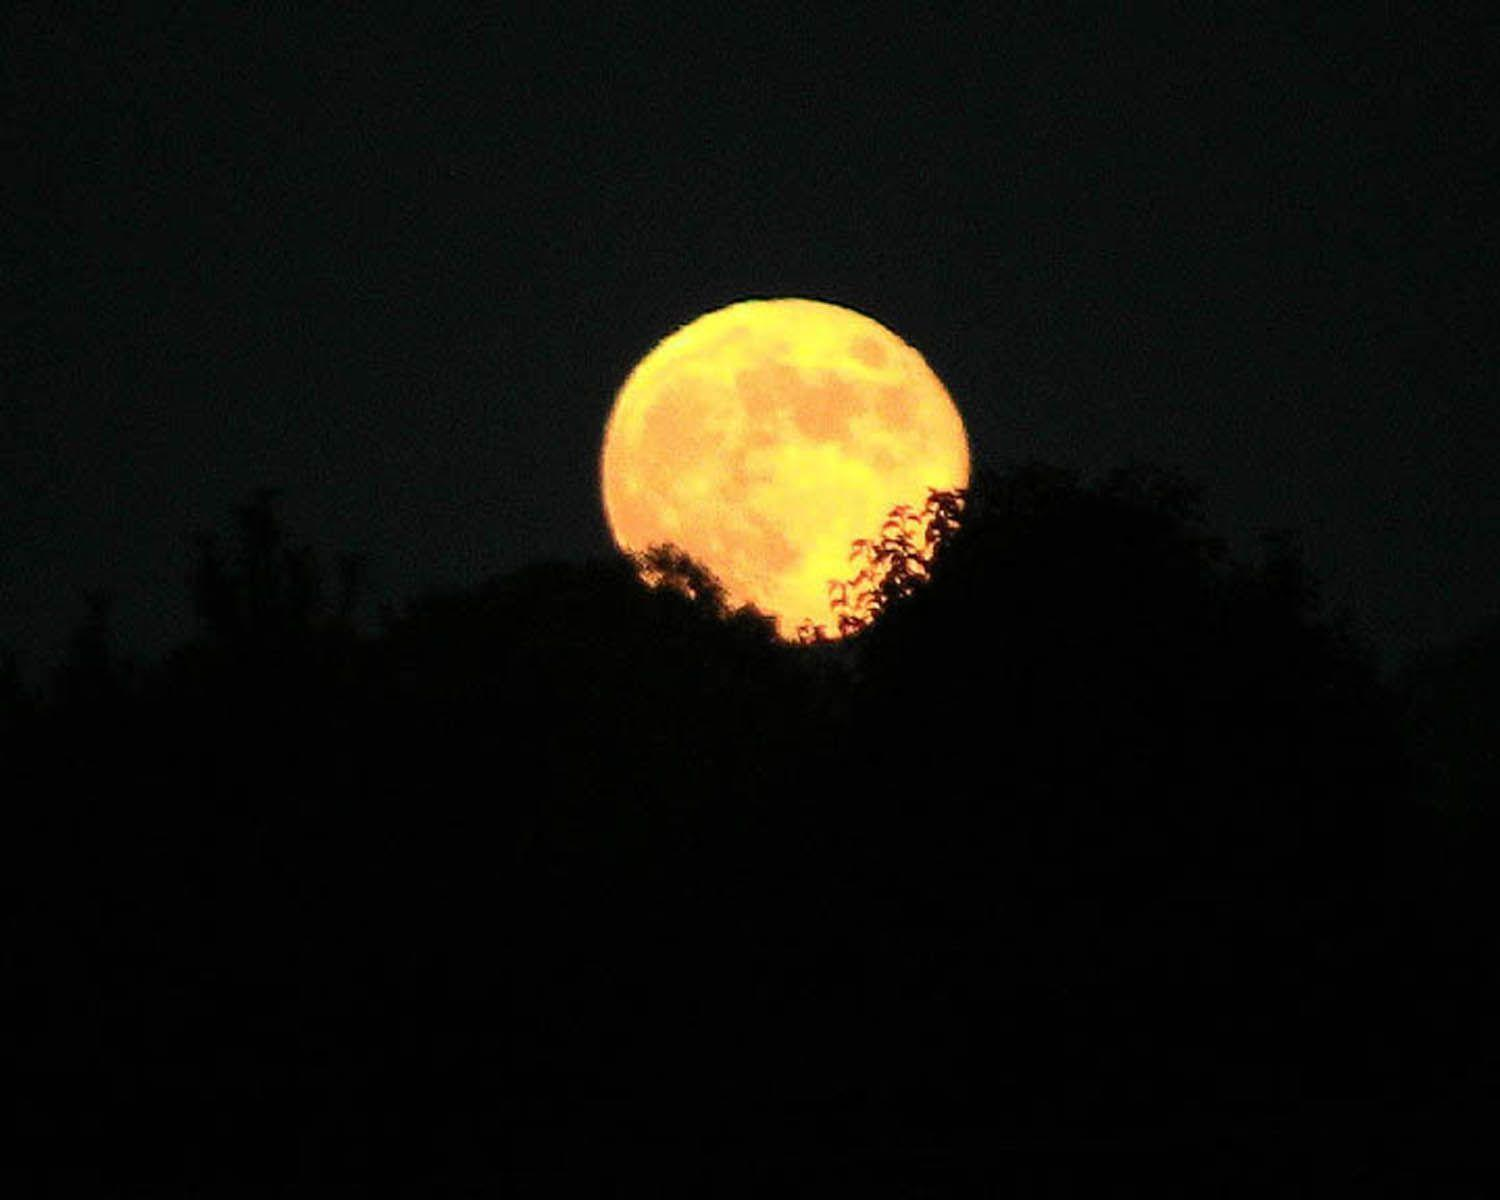 A rare harvest moon will dazzle the skies Friday the 13th